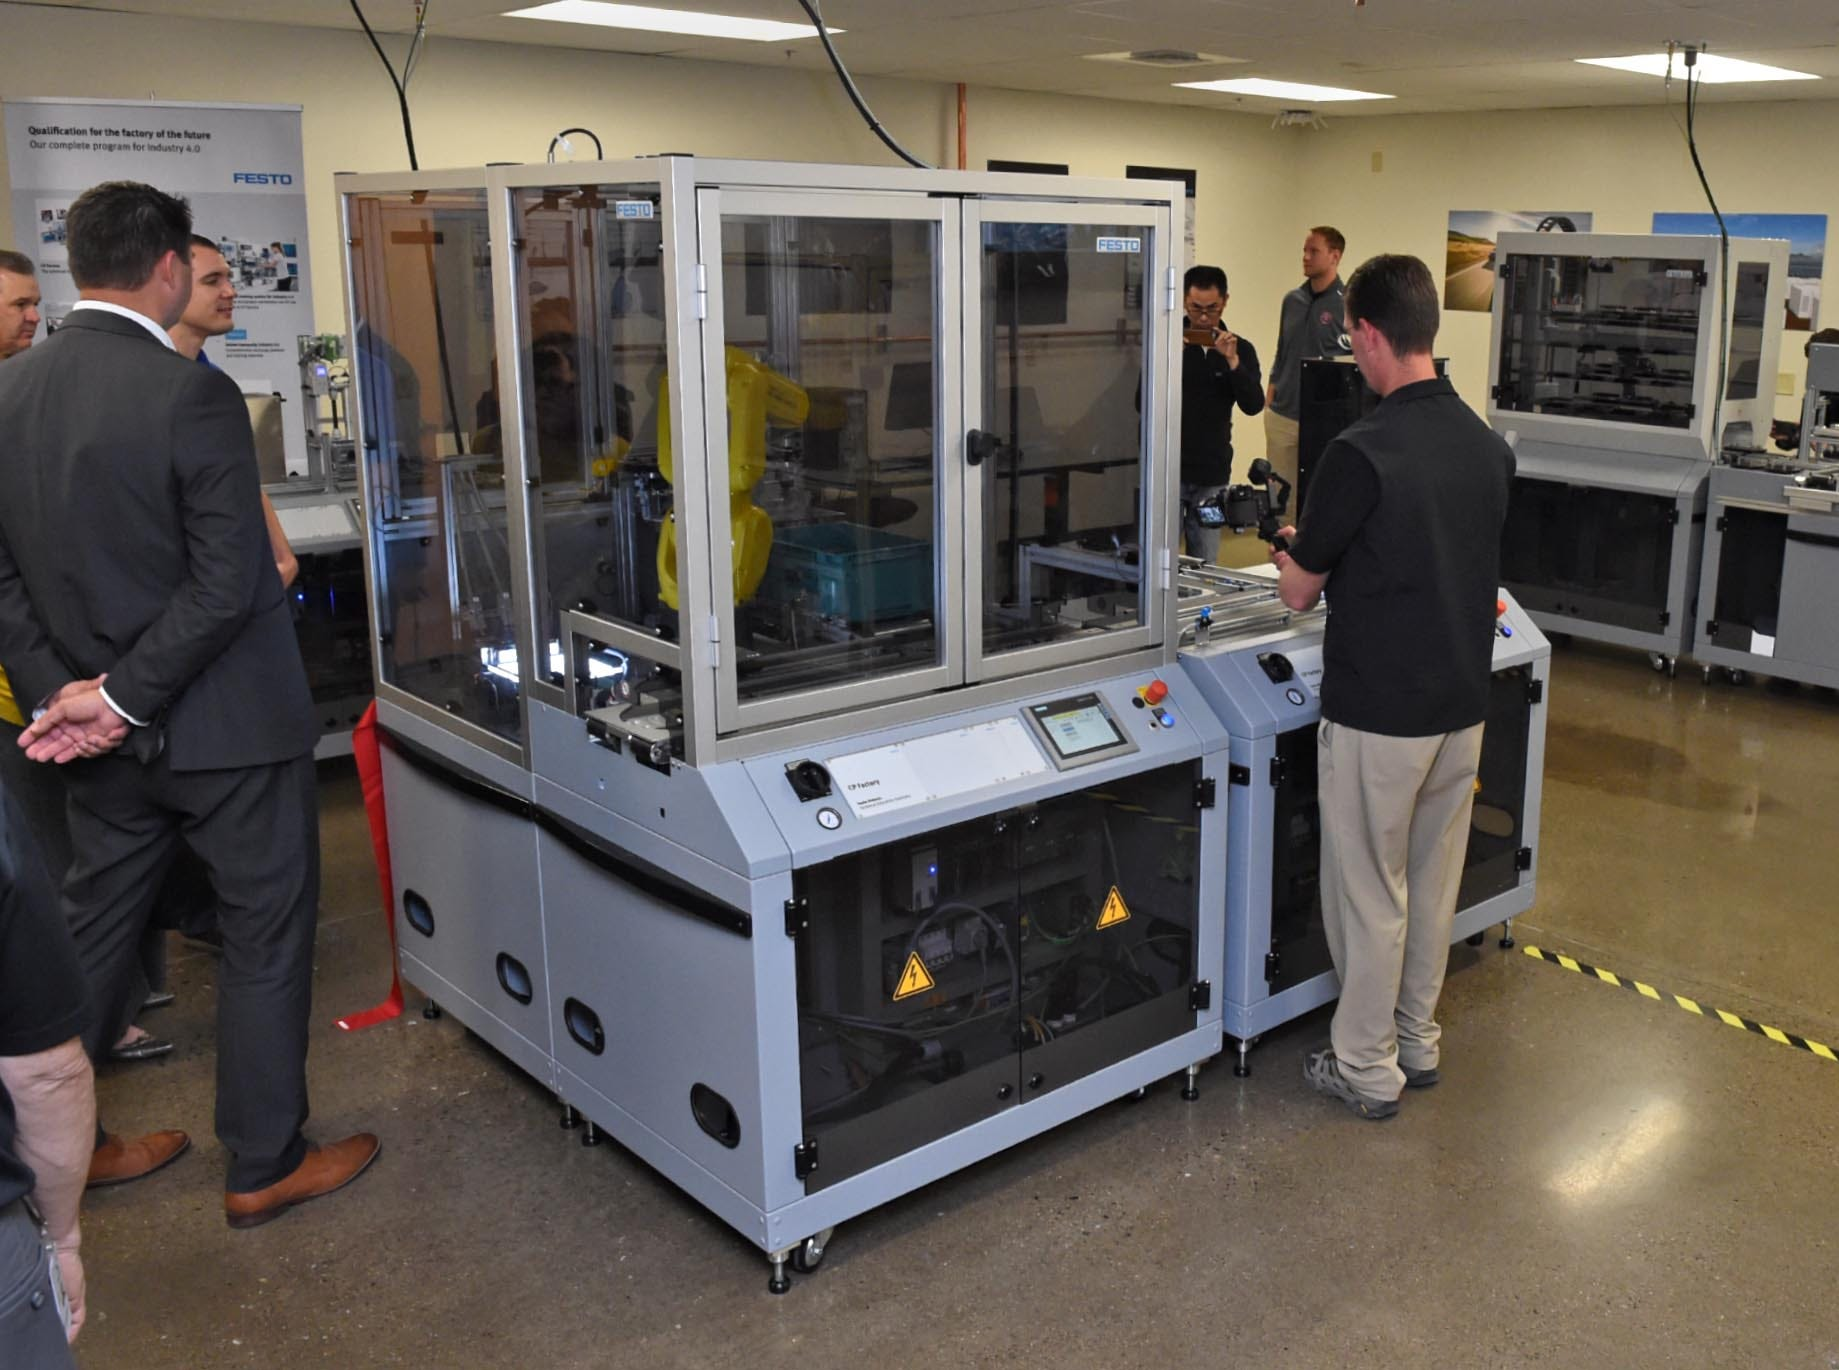 TMCC's Industry 4.0 Advanced Manufacturing Lab. The lab houses a new $755,000 Cyber-Physical Factory. This system will manufacture a mock product in a completely automated environment using scaled down, simulated factory processes such as warehouse, drilling, vision inspection, assembly, thermal station and press.